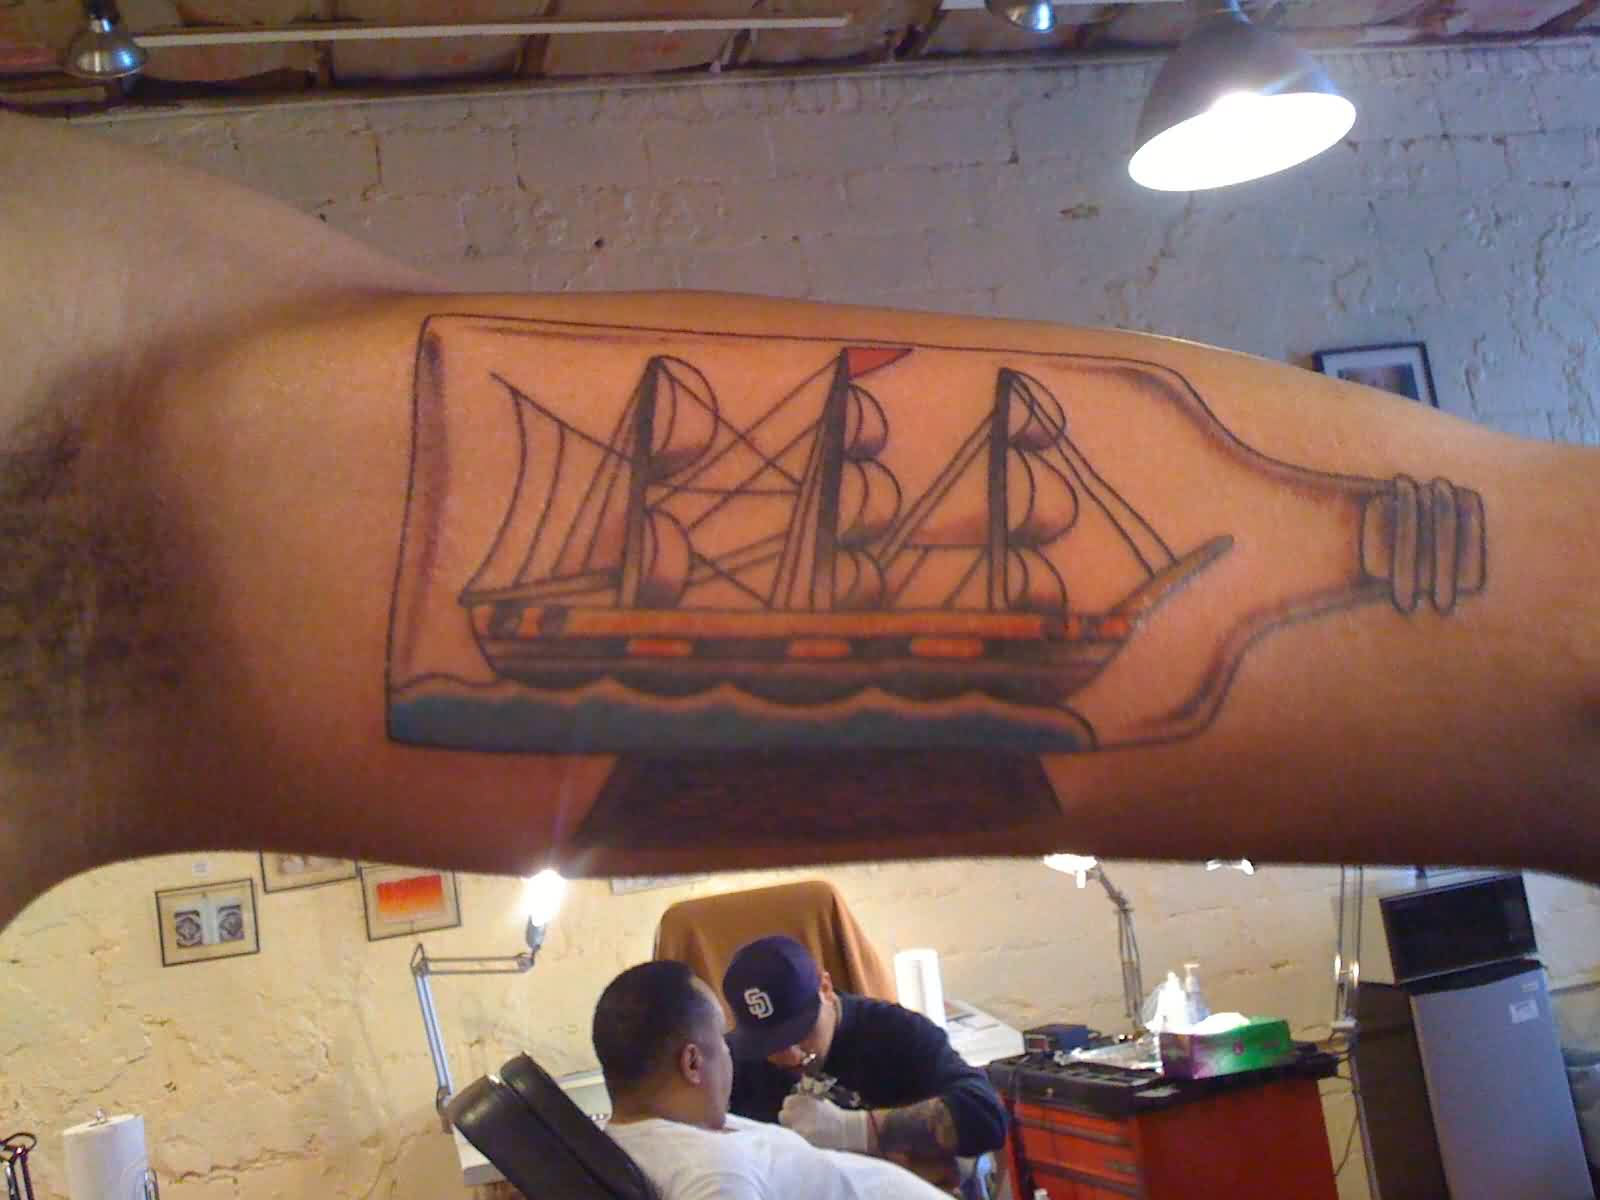 Inner Arm Bottle With Ship Tattoo (2)